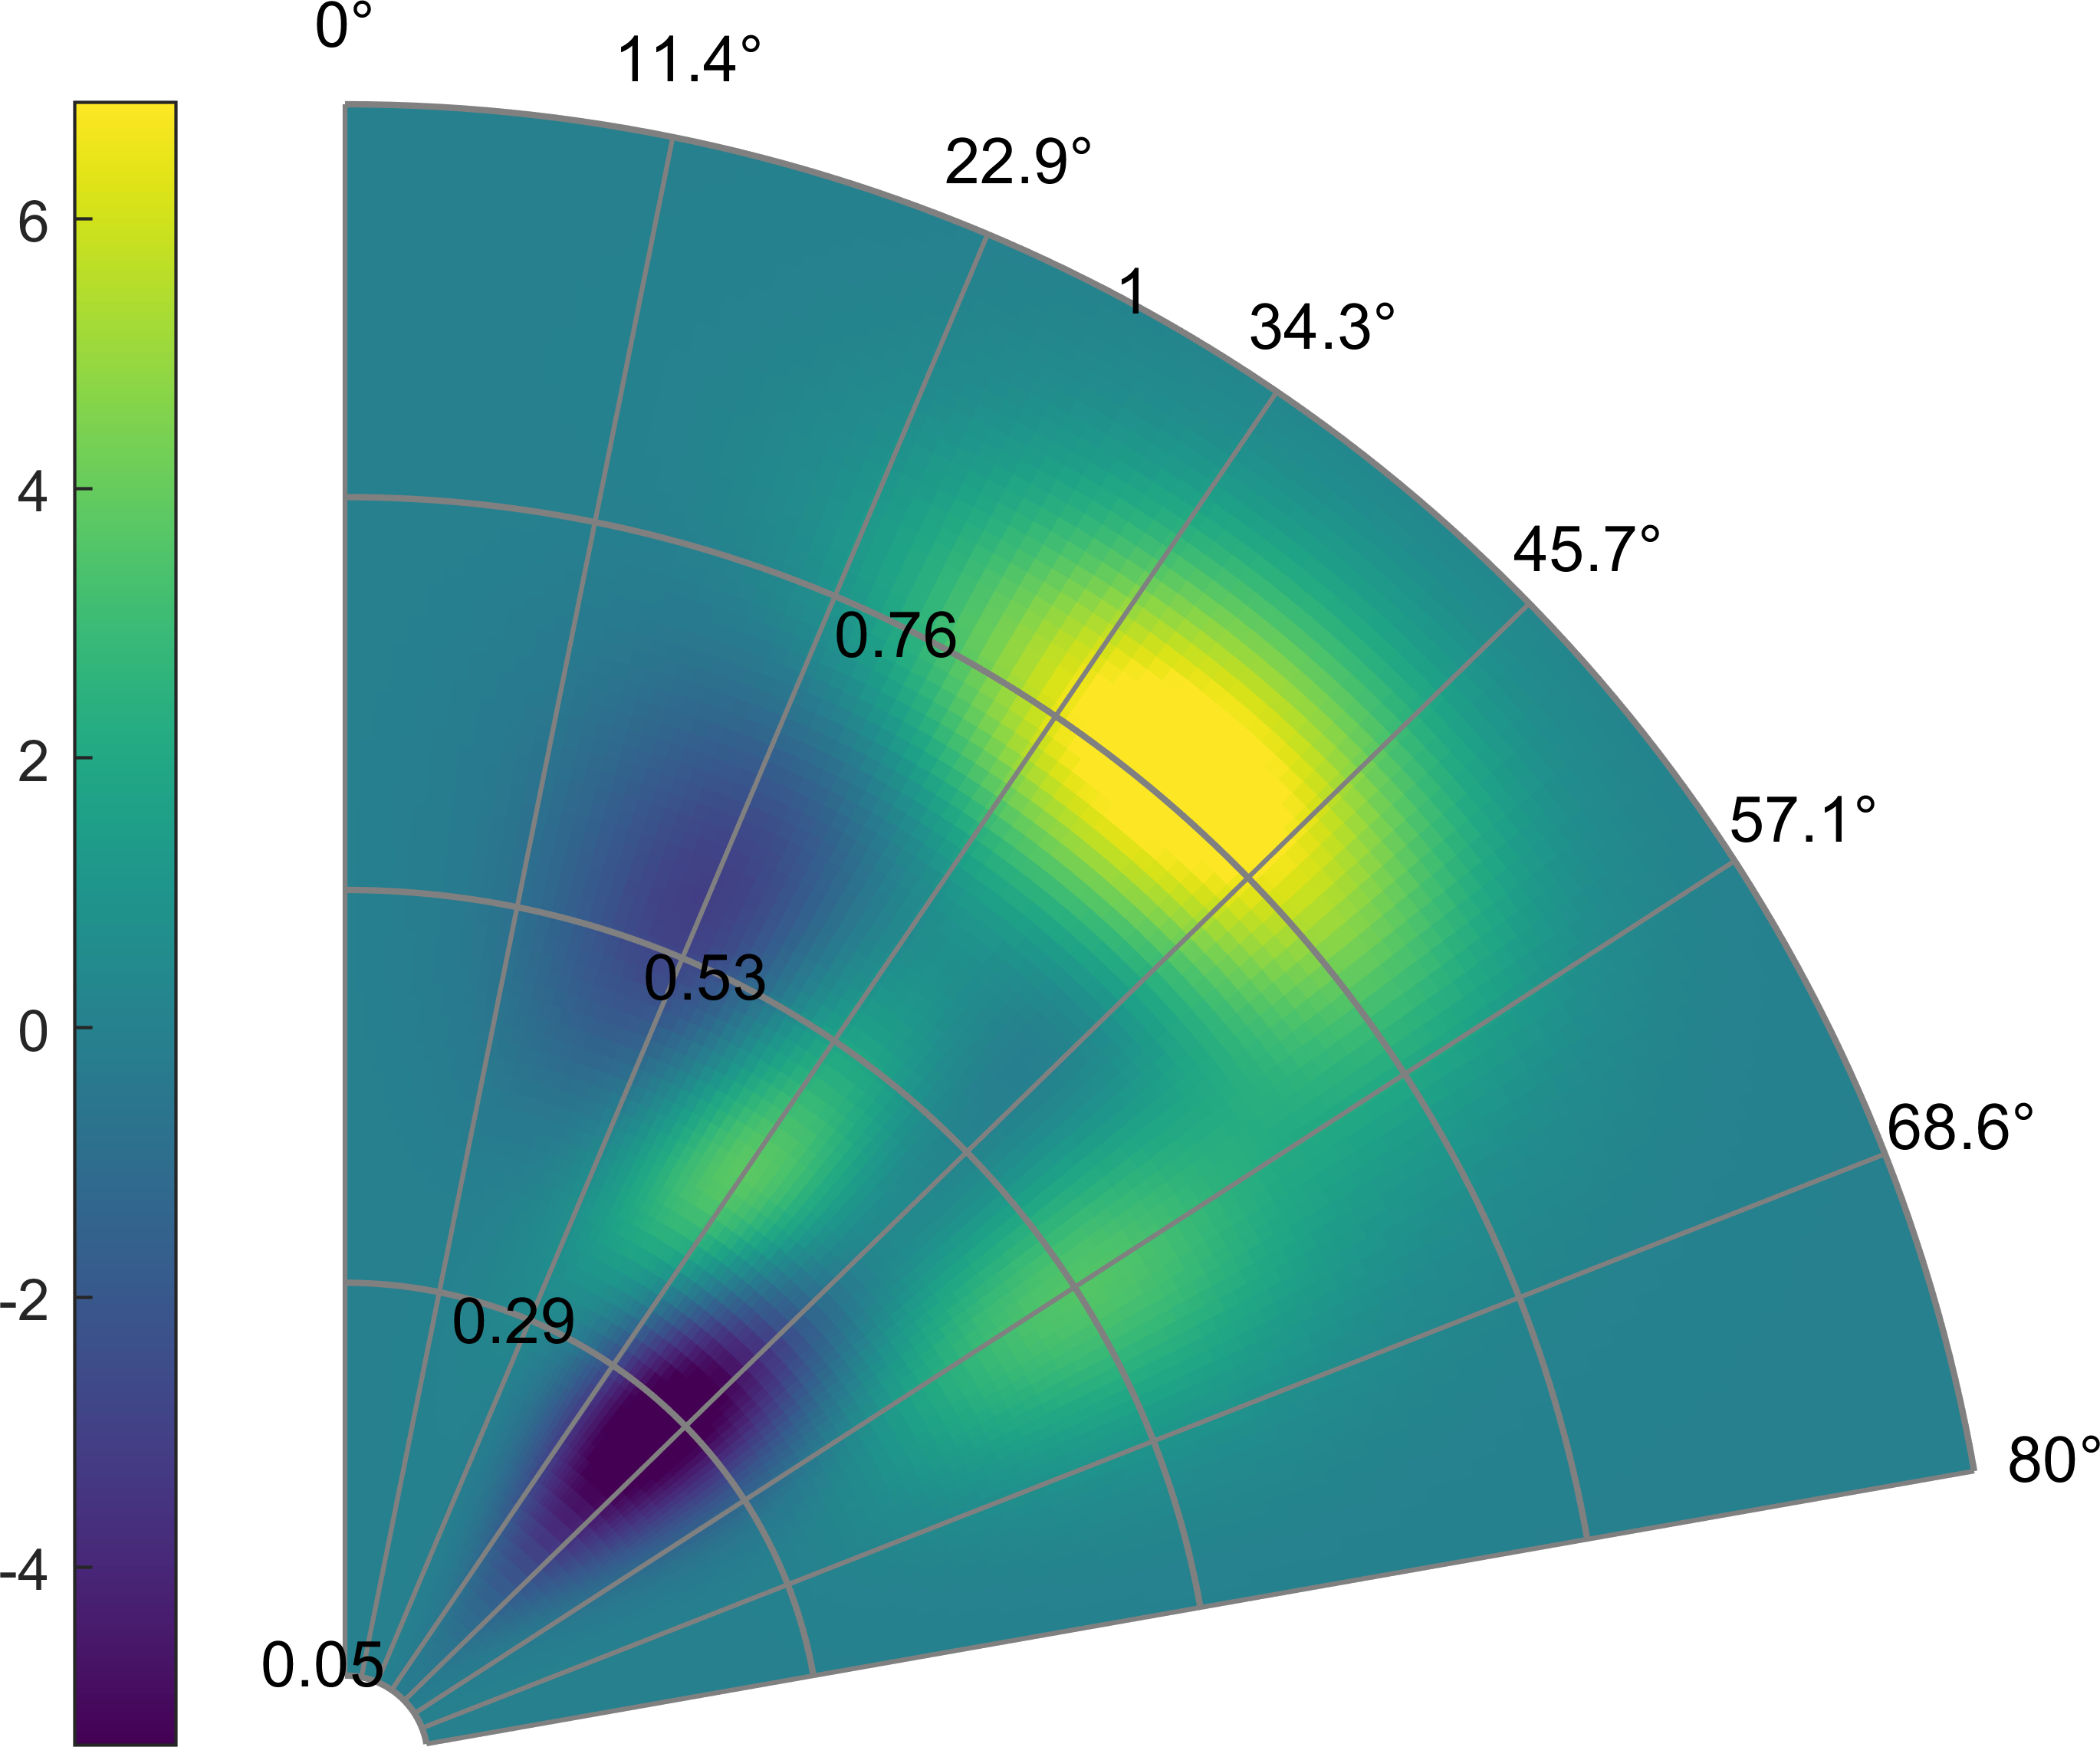 pcolor in polar coordinates - File Exchange - MATLAB Central